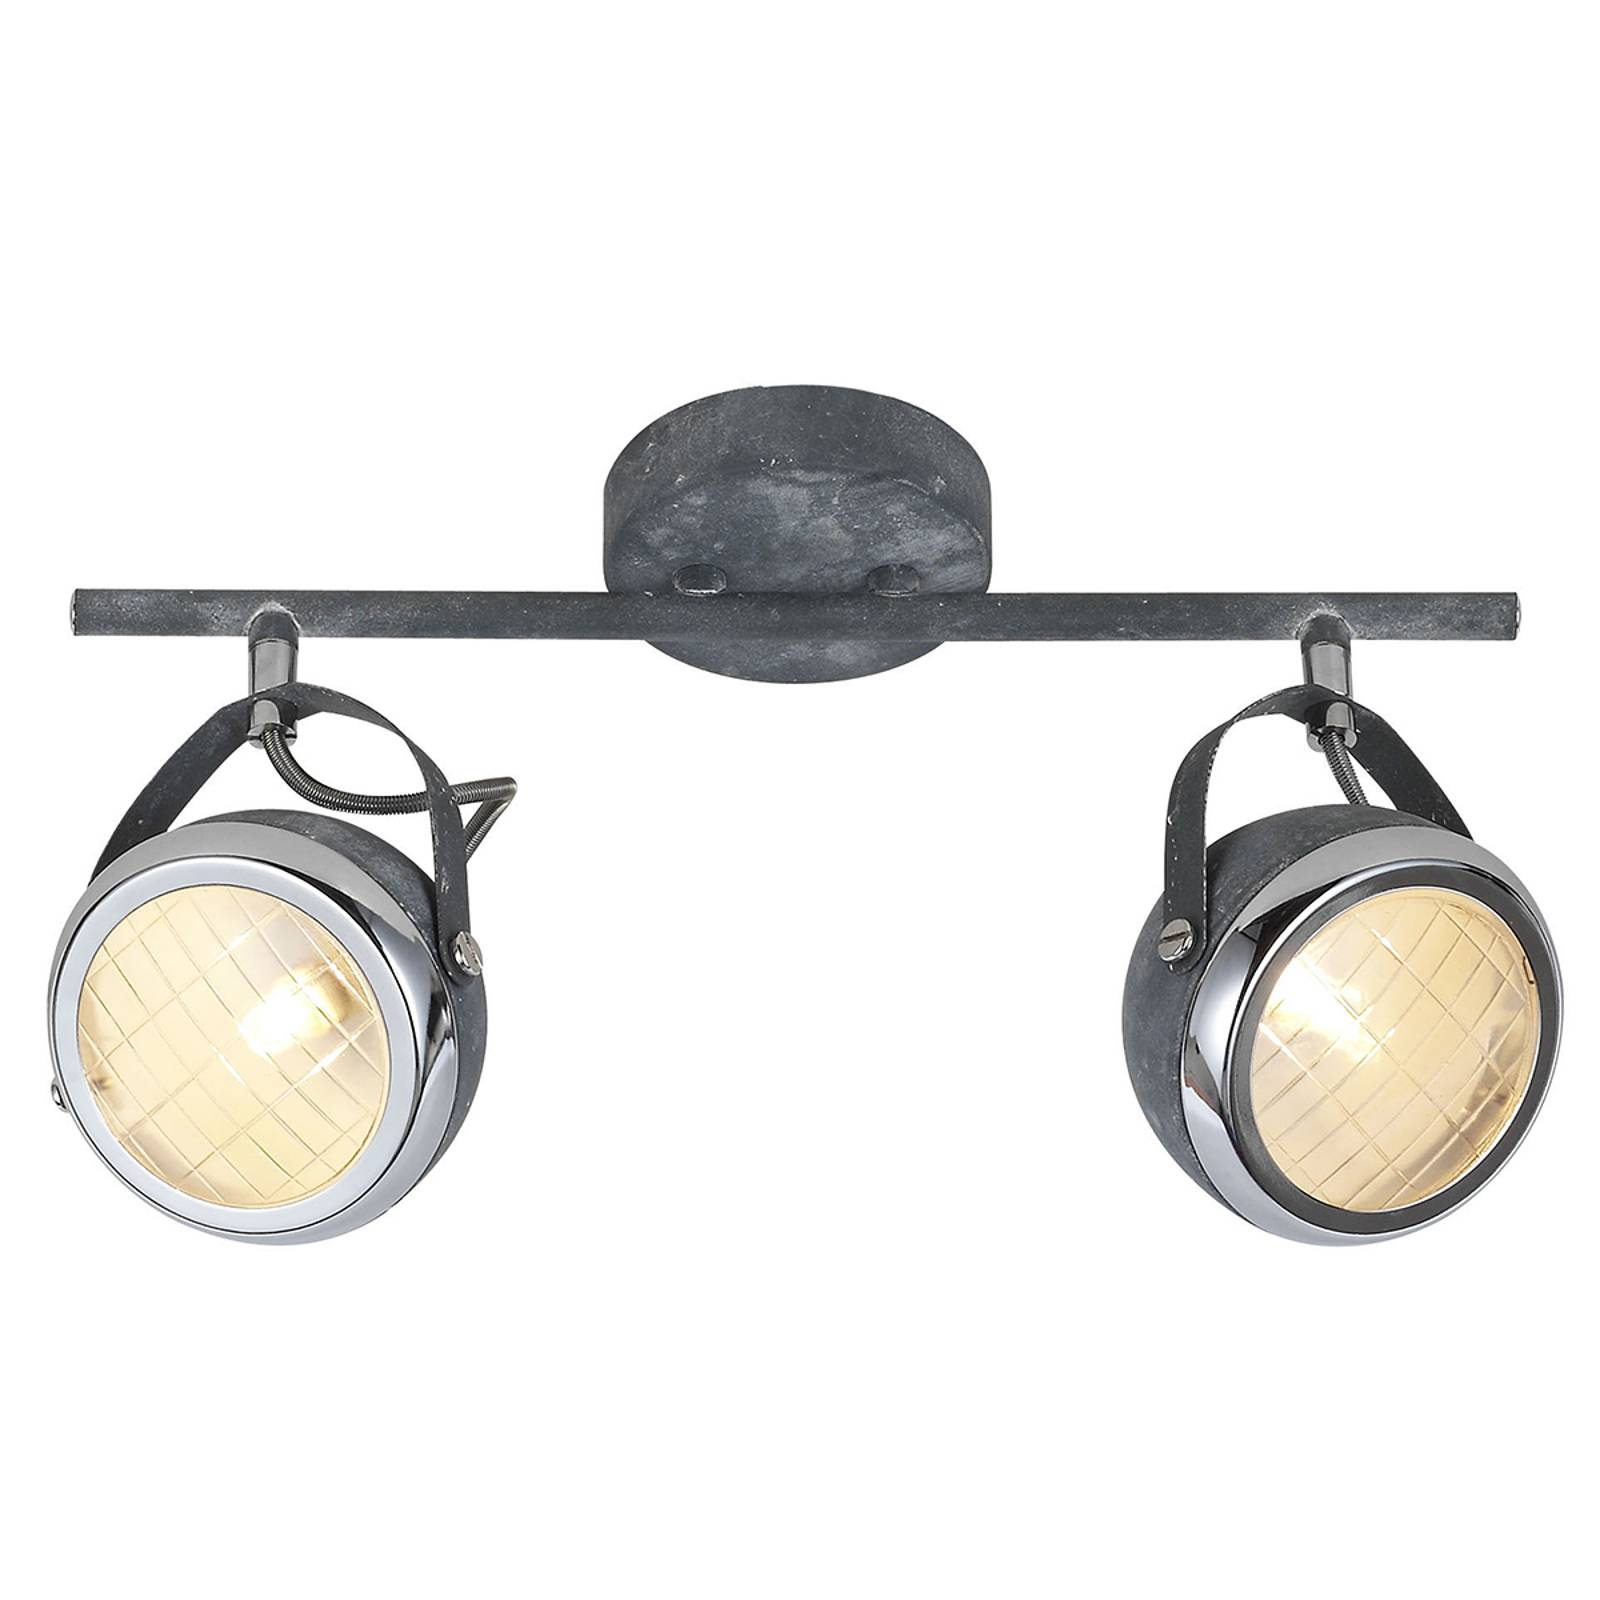 Concrete grey ceiling light Rider, two-bulb from Brilliant